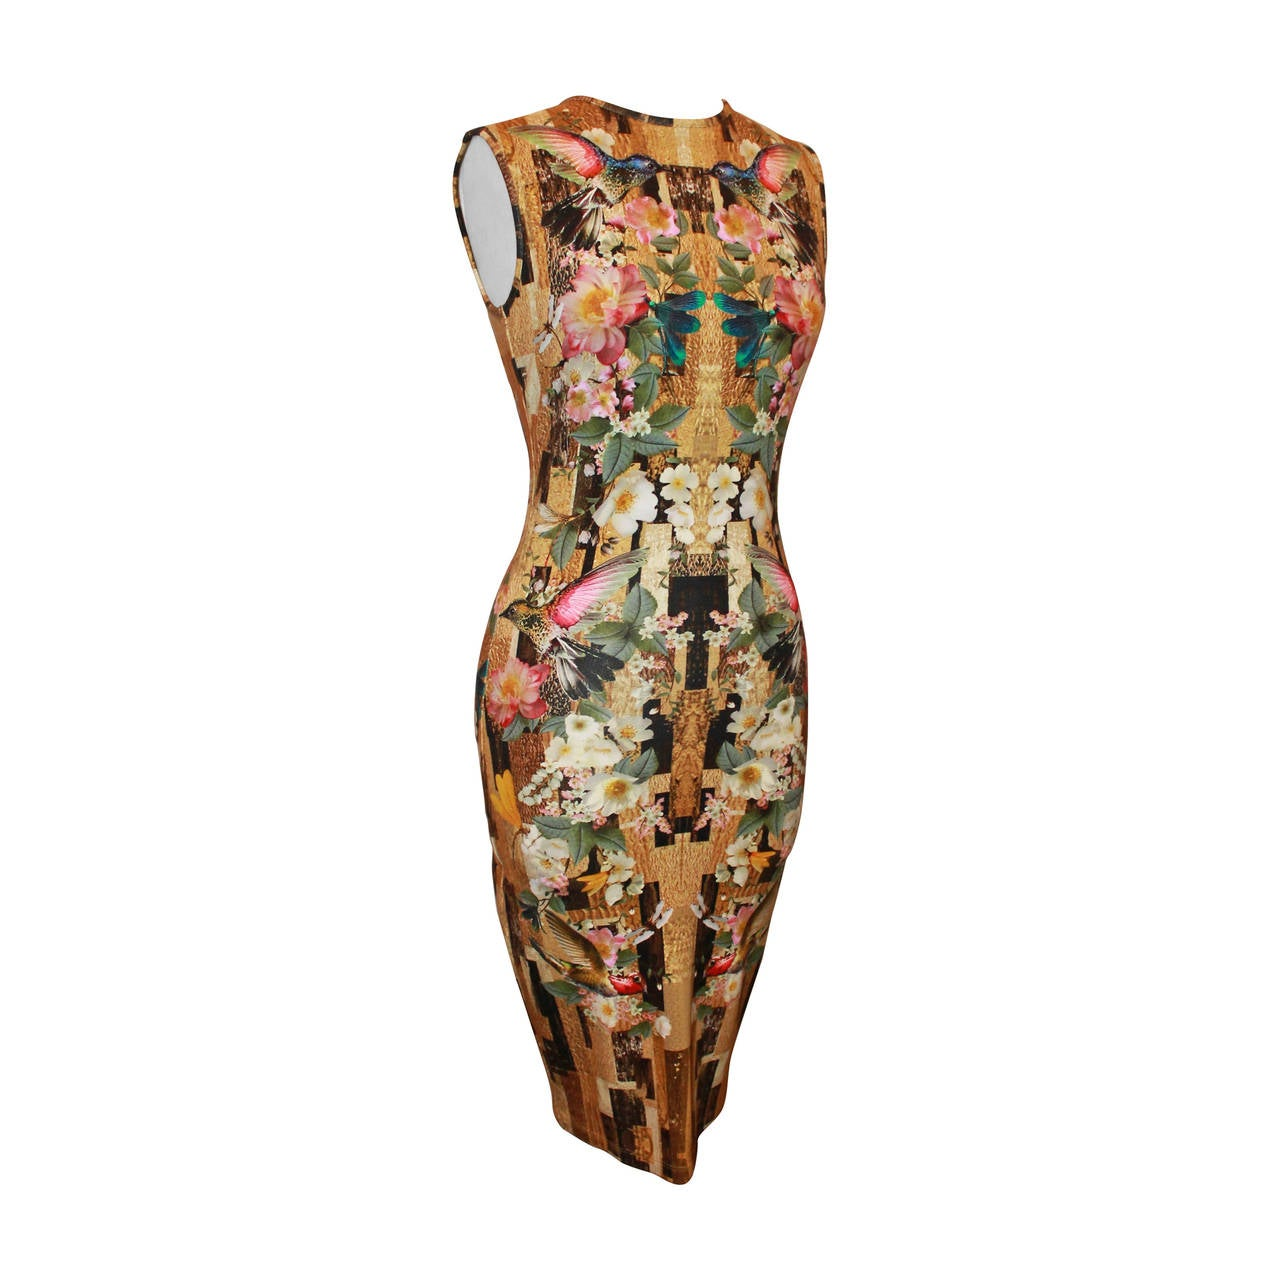 Alexander McQueen 2013 Resort Hummingbird & Floral Print Fitted Dress - M 1